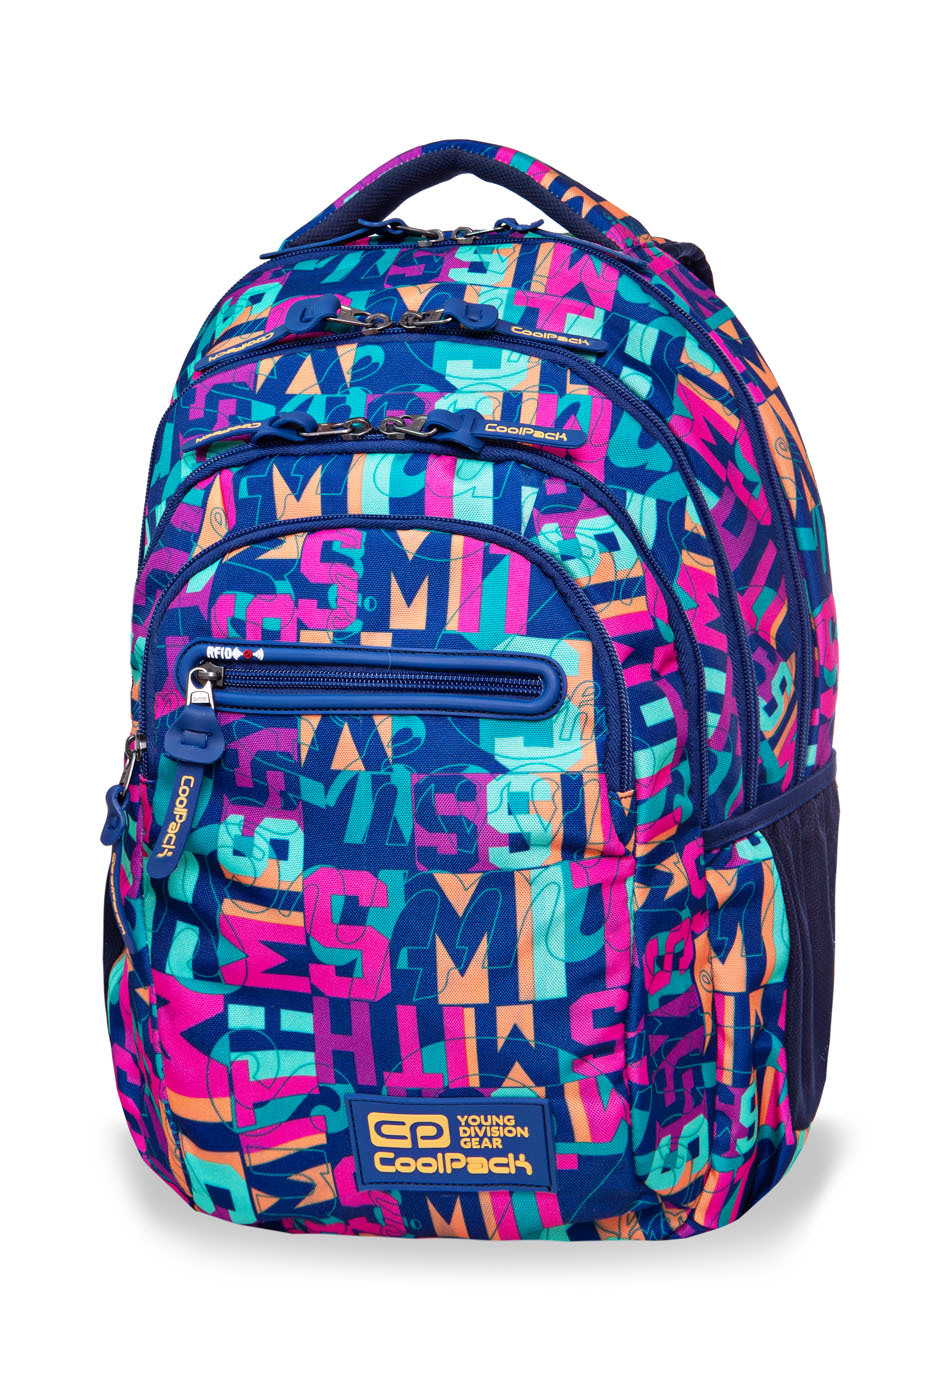 Coolpack - college tech - youth backpack - missy